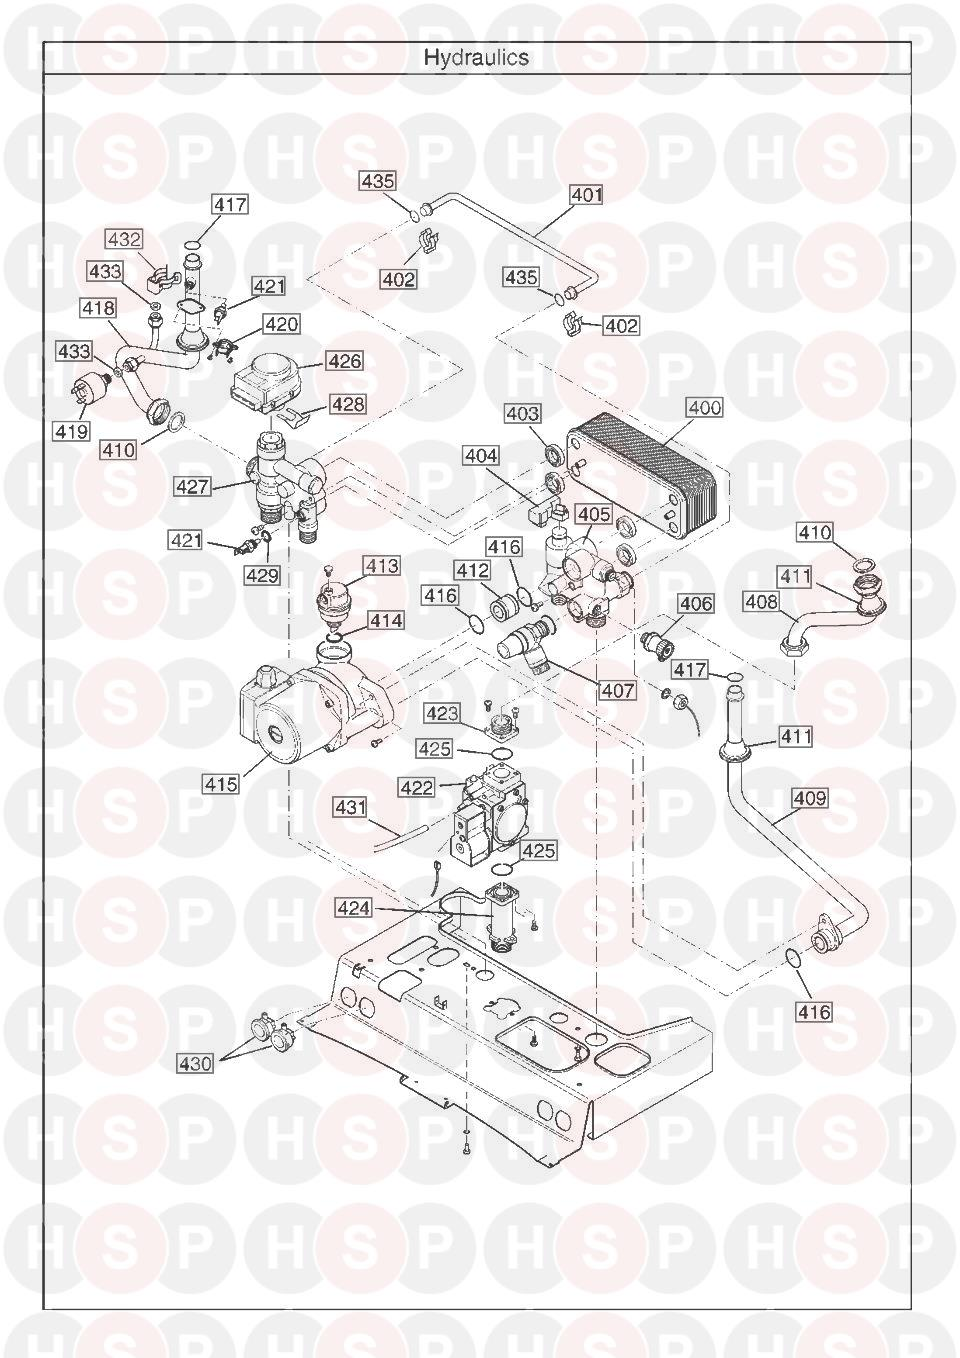 HYDRAULICS WITH BYPASS diagram for Baxi PLATINUM COMBI 28 HE A (AFTER SERIAL NO. BNC0932 ISSUE 7)